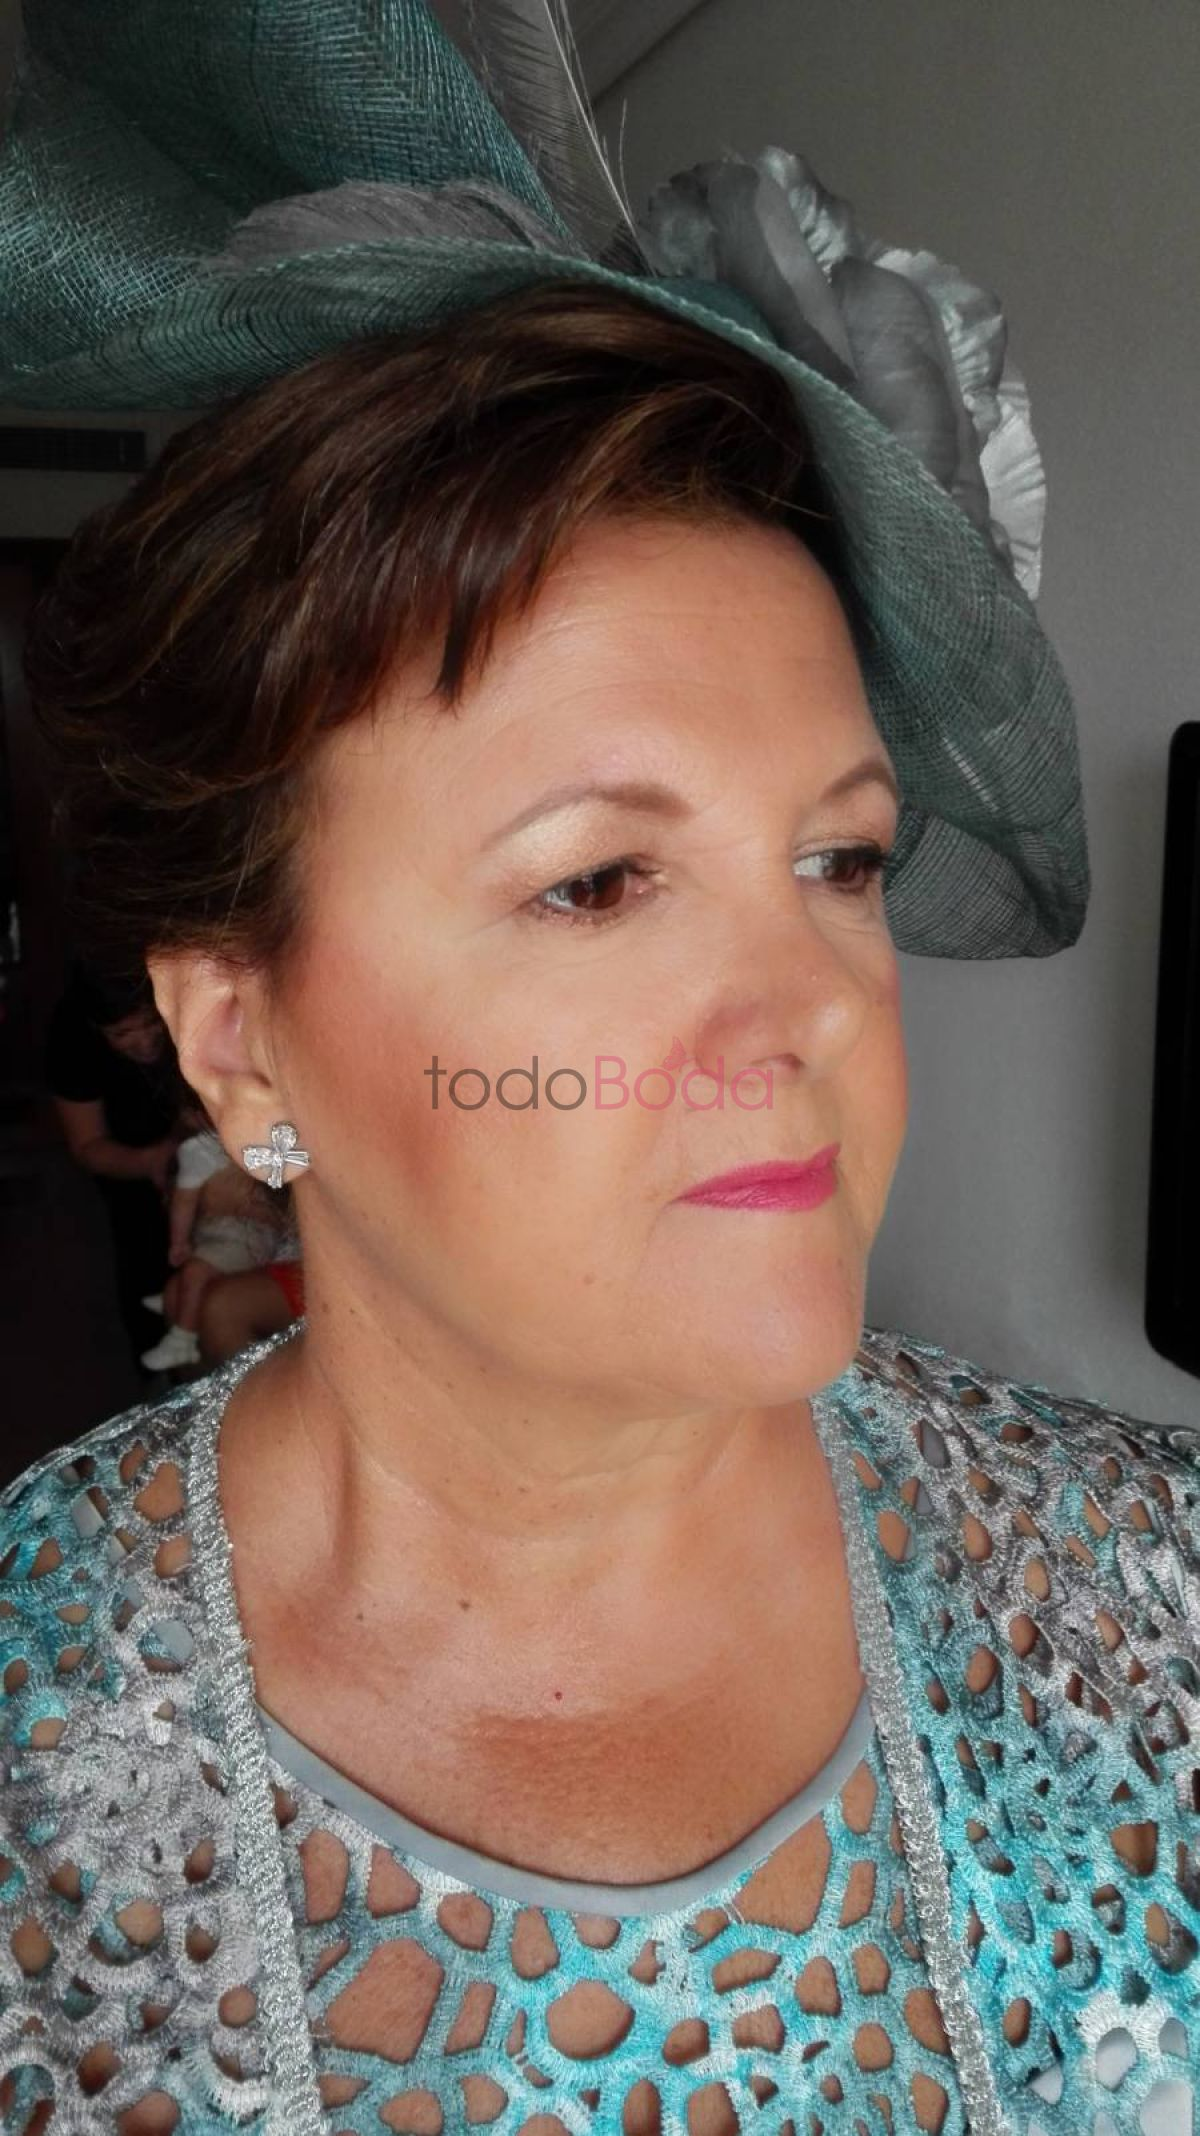 Tu boda en María Ruiz - Make Up Artist 6